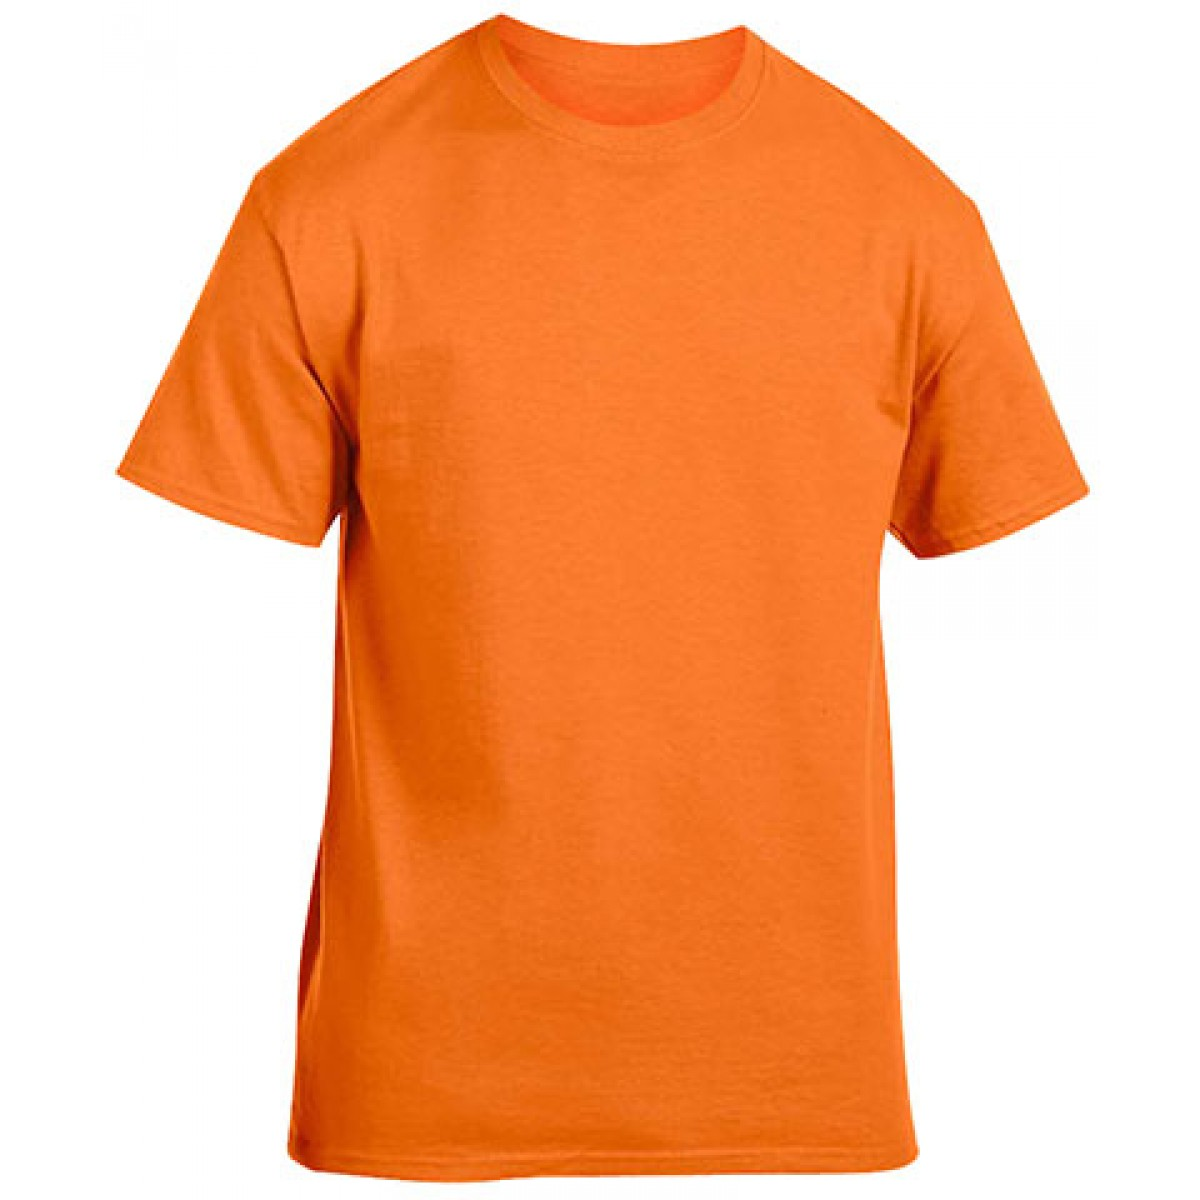 Cotton Short Sleeve T-Shirt-Safety Orange-3XL